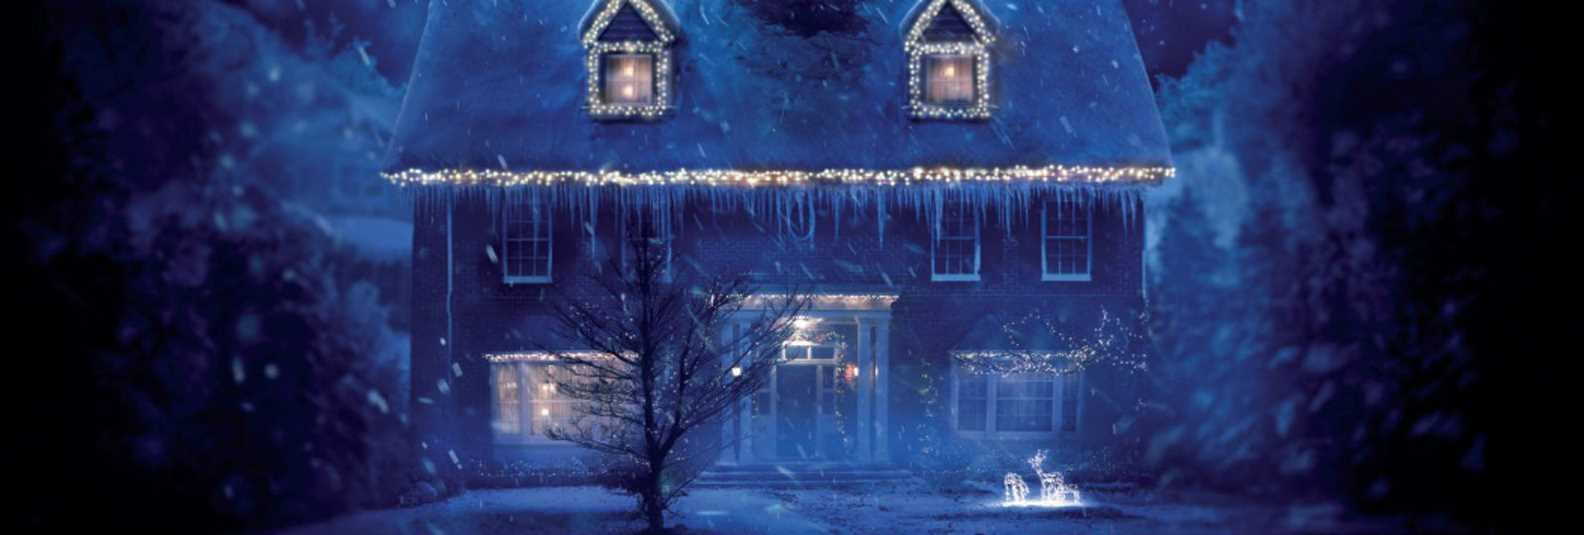 Five Christmas films you might not have heard of